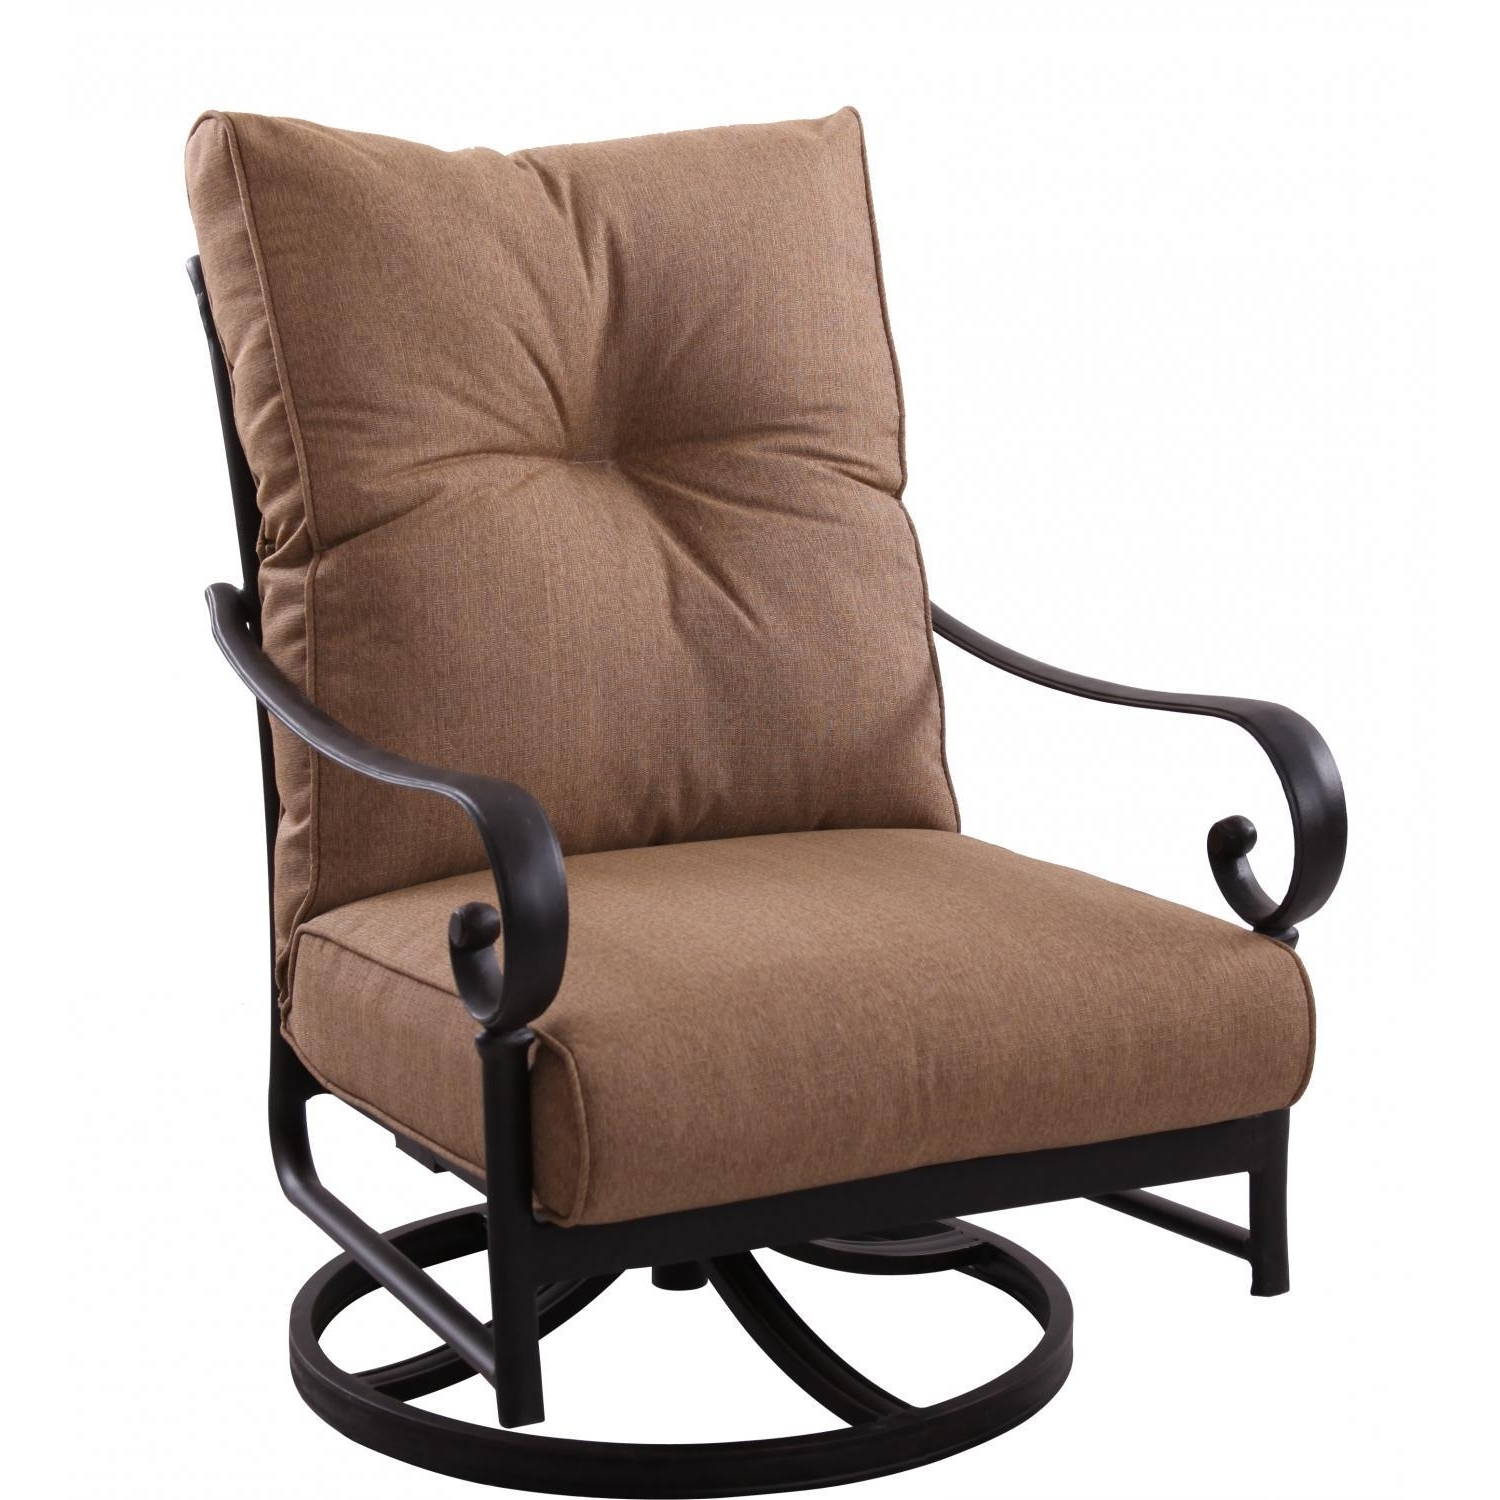 Darlee Santa Anita Cast Aluminum Patio Swivel Rocker Club Chair In 2019 Patio Rocking Chairs With Covers (View 1 of 20)